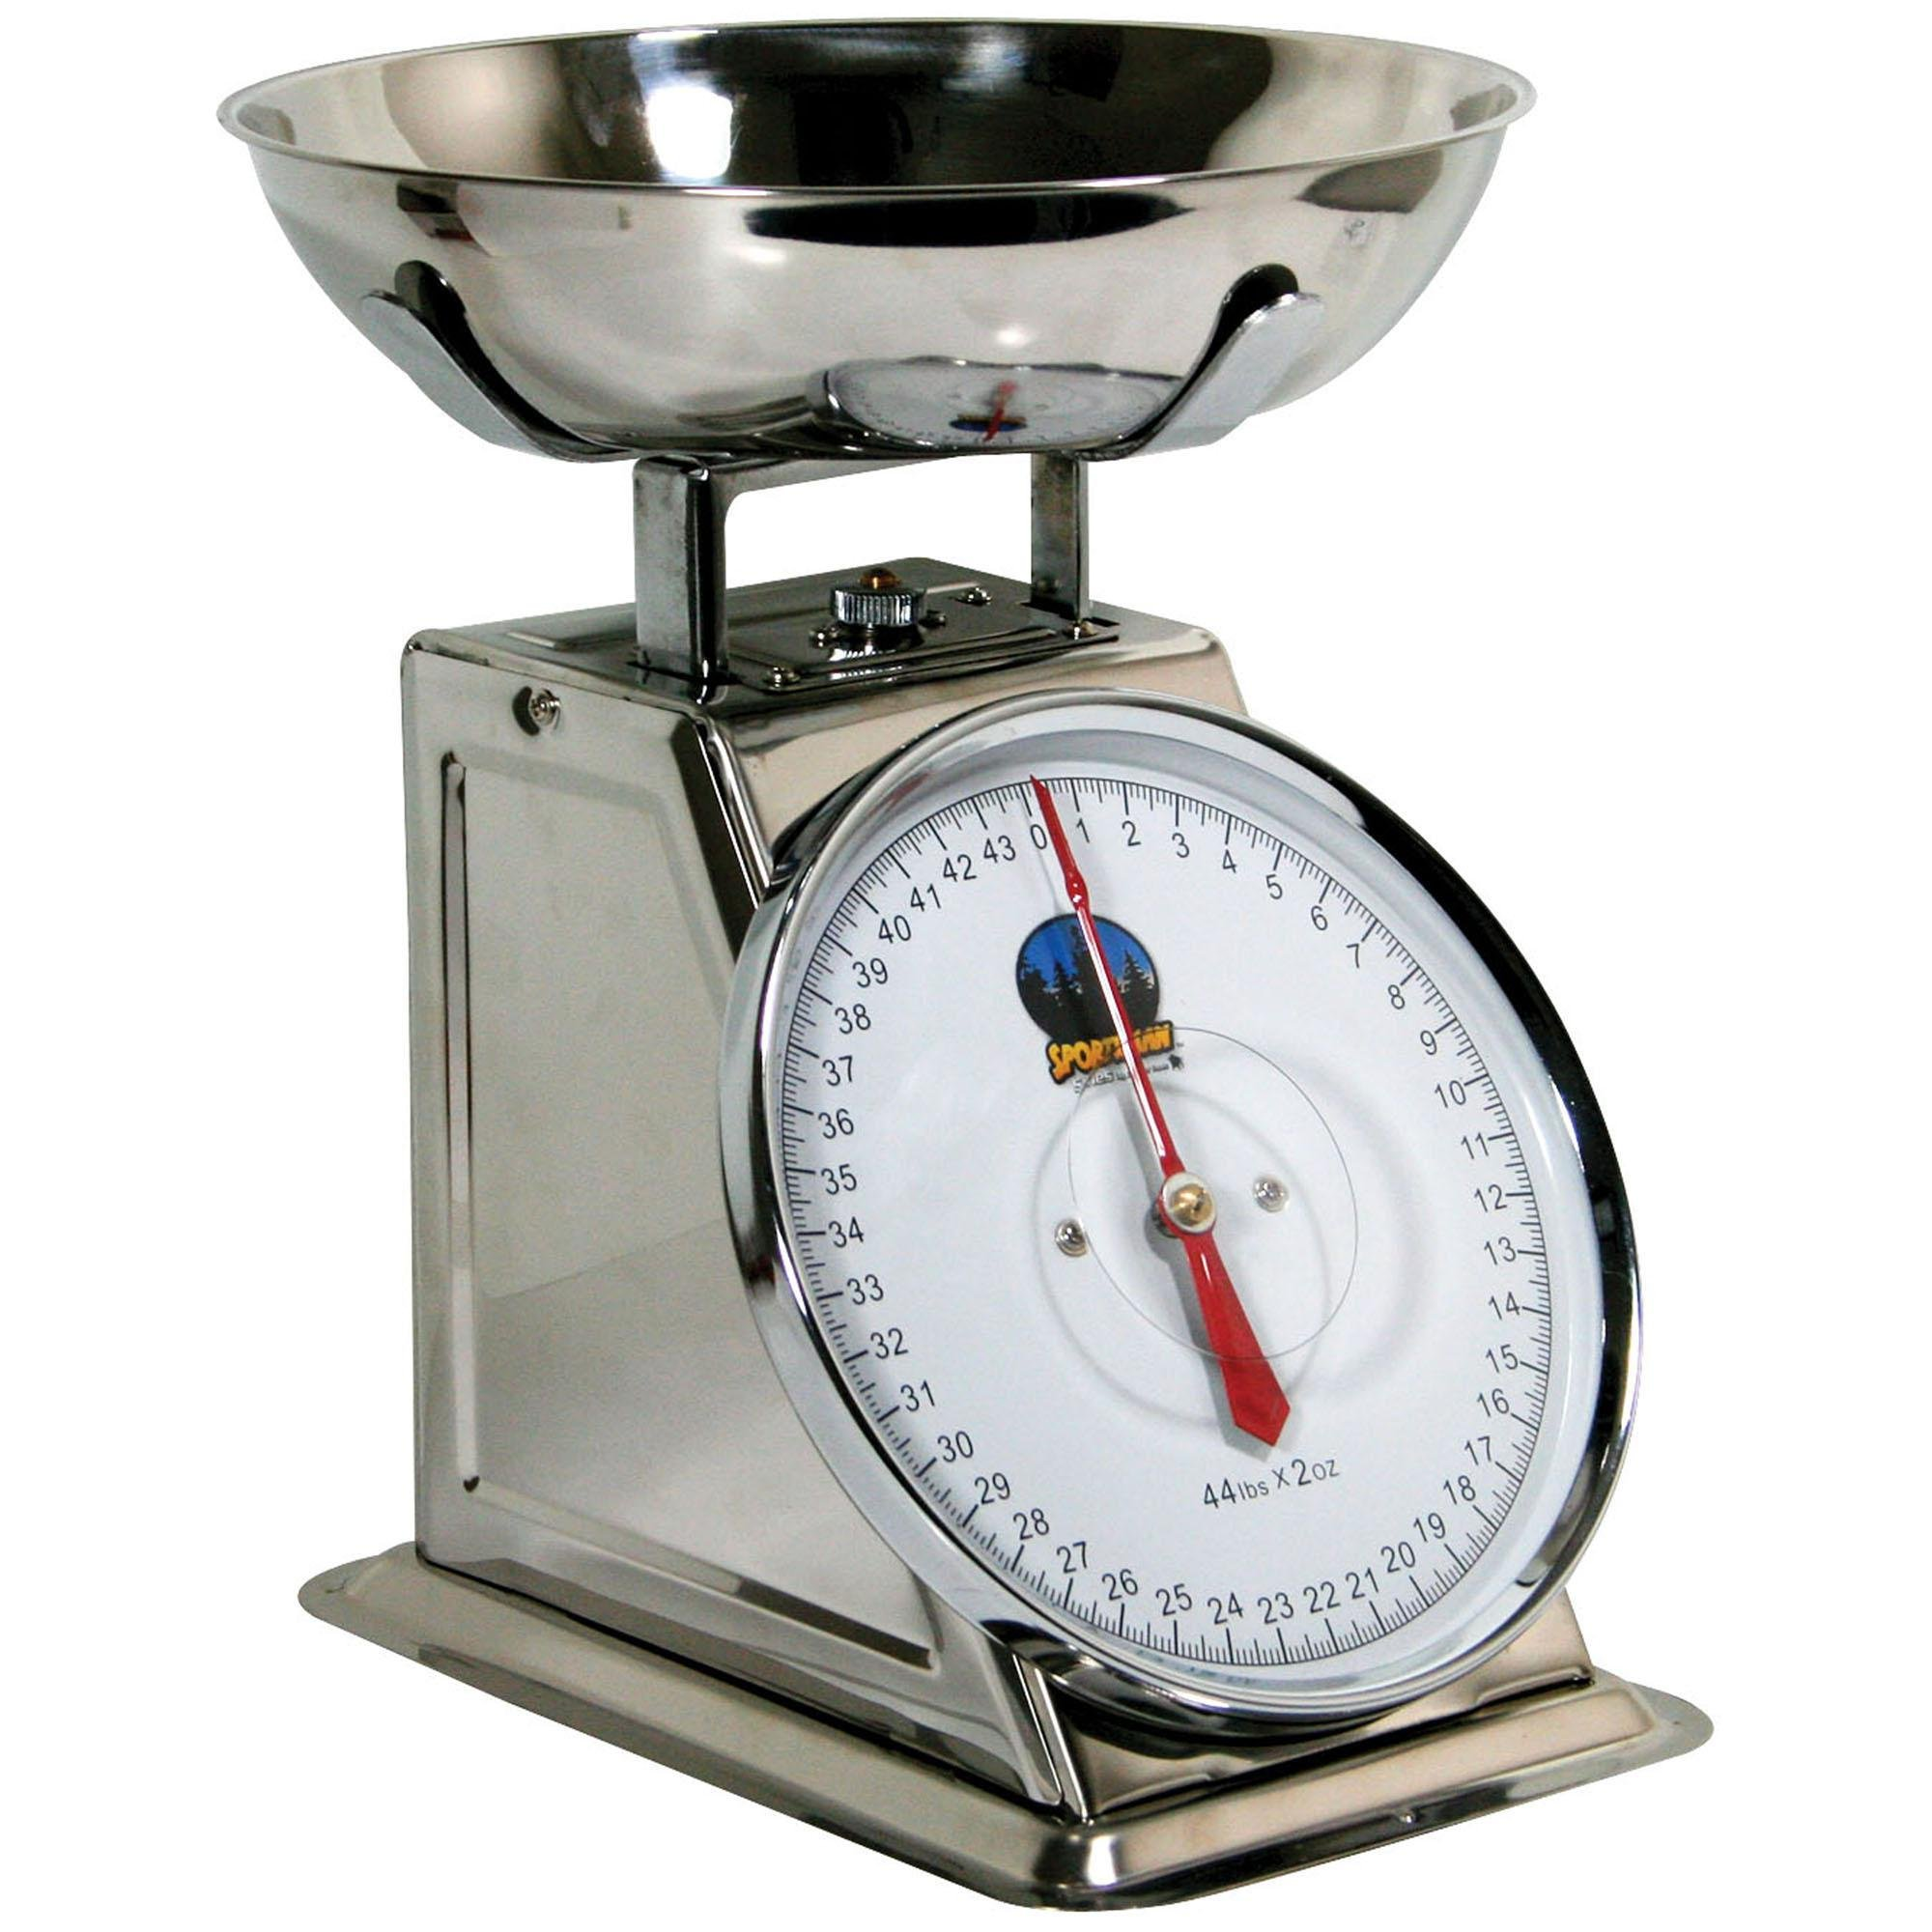 Sportsman Series Kitchen Baking Food Preparation 44 Lb Stainless Steel Dial Scale Measuring Tool by Buffalo Tools